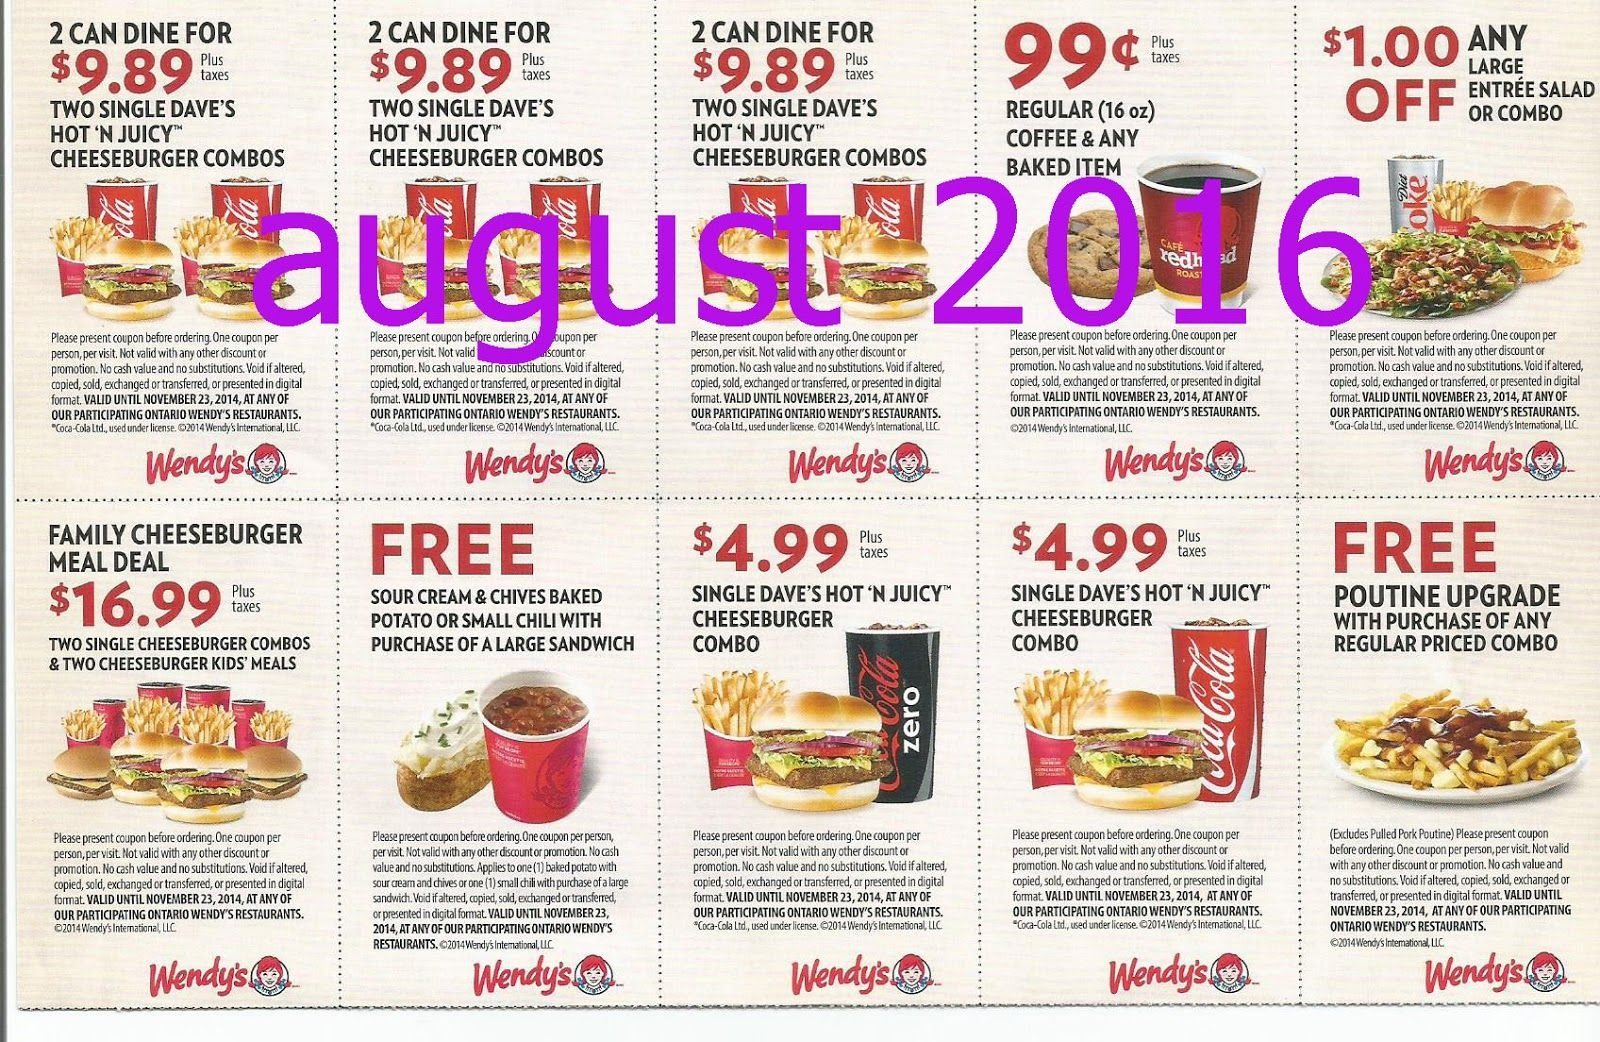 Free Printable Coupons: Wendys Coupons | Fast Food Coupons | Wendys - Free Mcdonalds Smoothie Printable Coupon